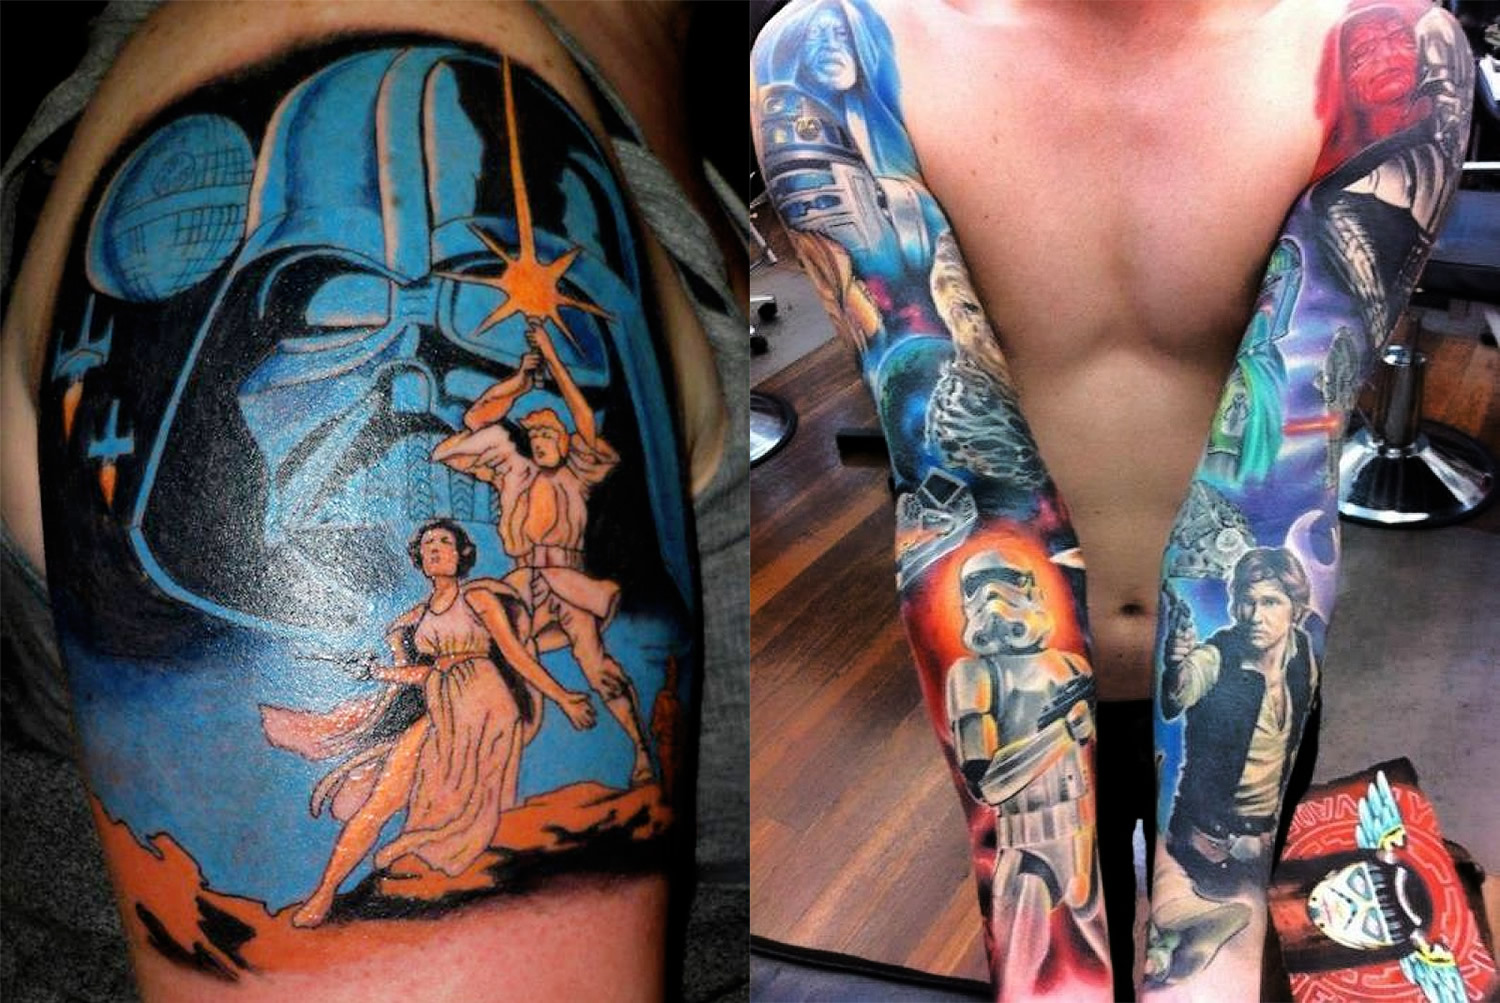 darth vader, star wars comic style and elaborate sleeve with star wars characters